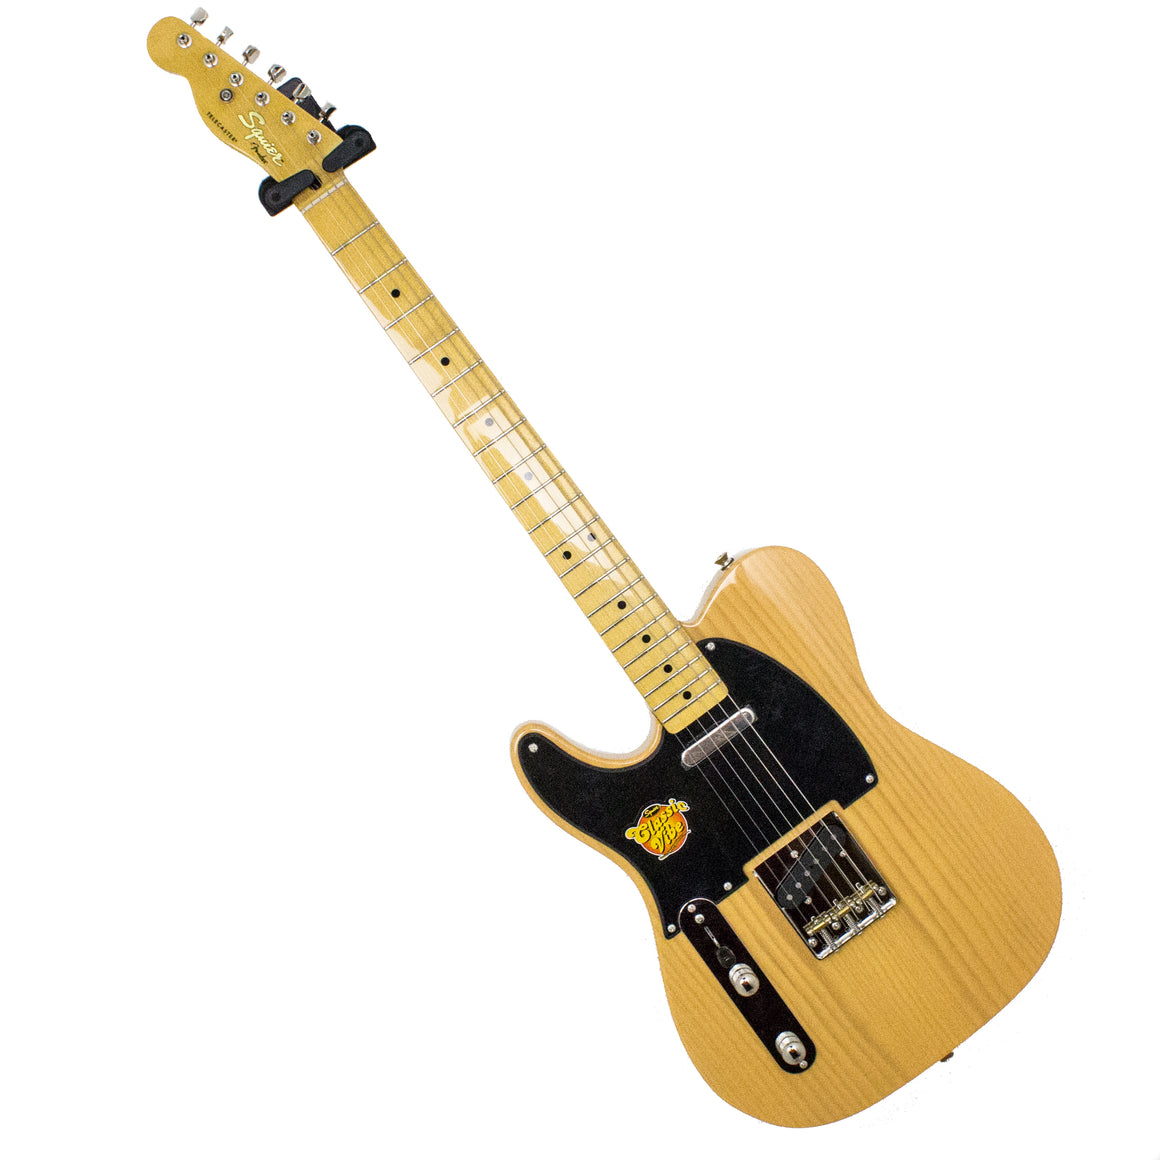 Squier Classic Vibe Telecaster '50s Left Handed Electric Guitar Butterscotch Blonde